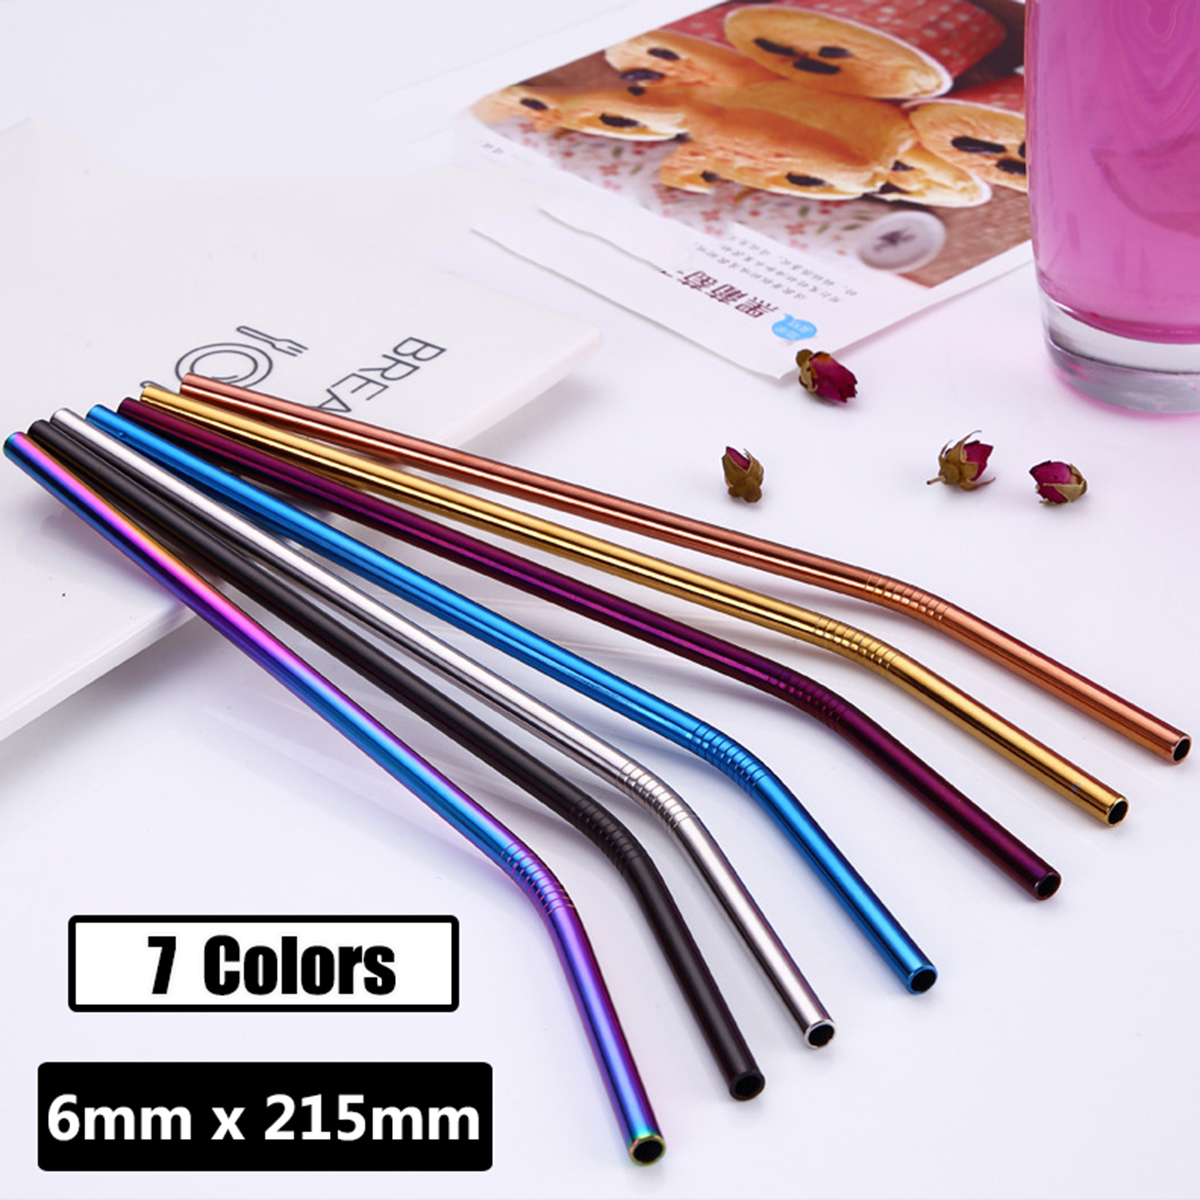 7 Colors 215x6mm Reusable Drinking Stainless Steel Metal Straw Supplies for Party Club Cafe